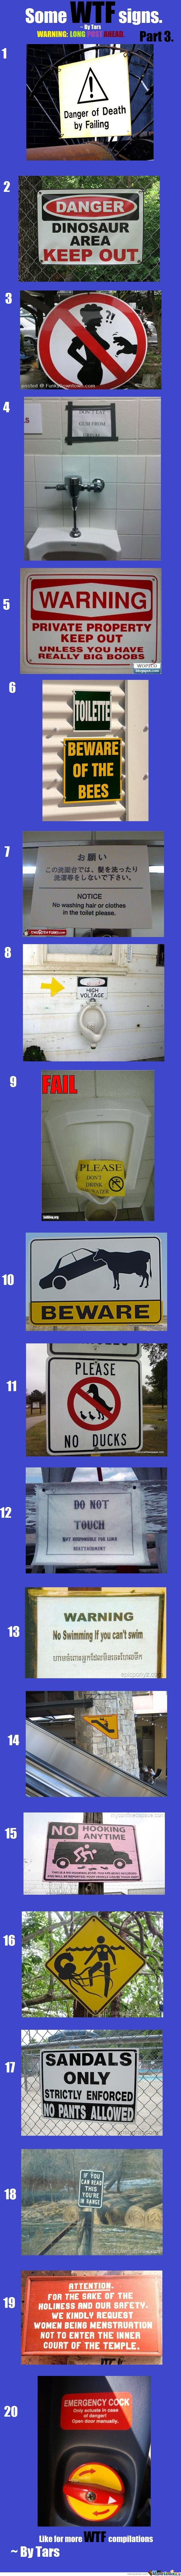 Wtf Signs Part 3